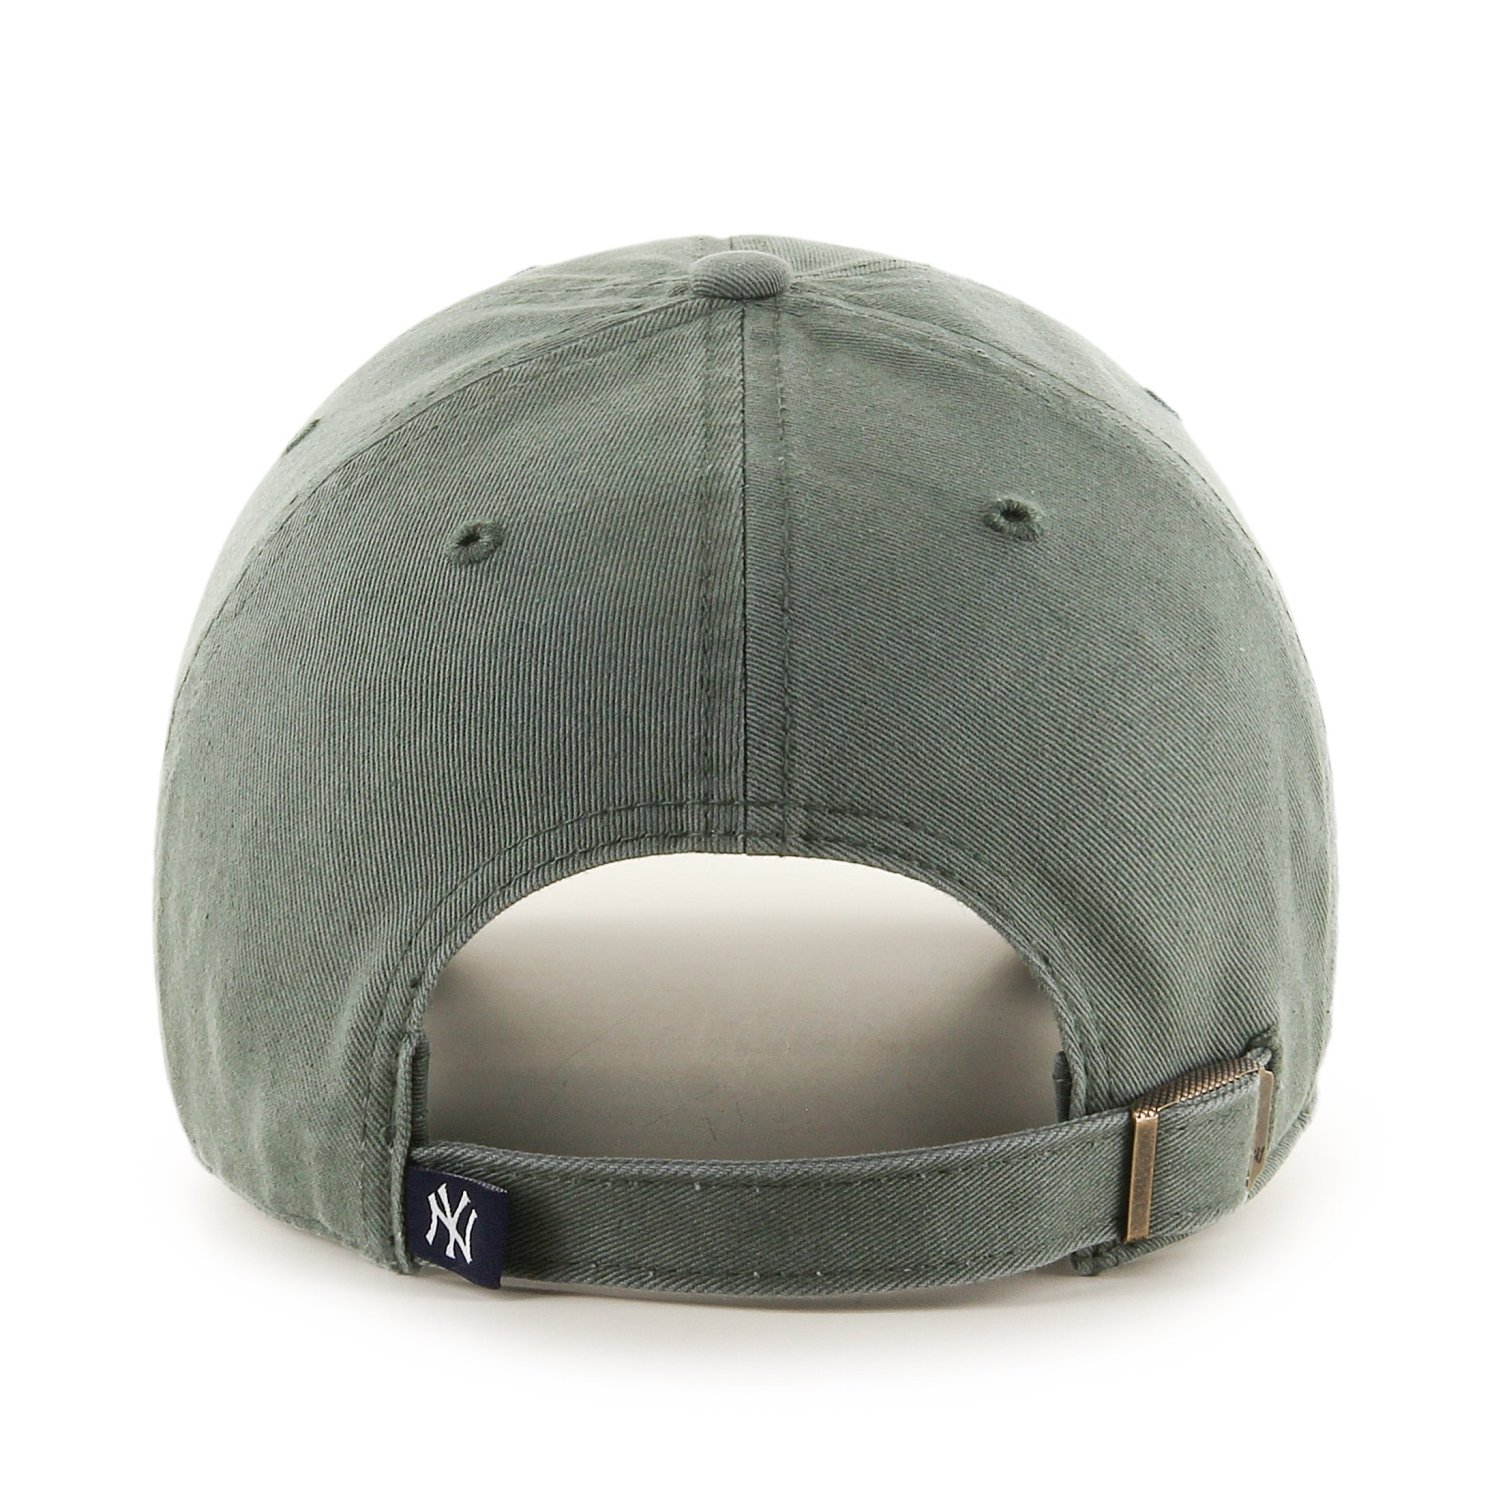 82a446779ca 47 Brand Adjustable Cap - CLEAN UP New York Yankees moss ...